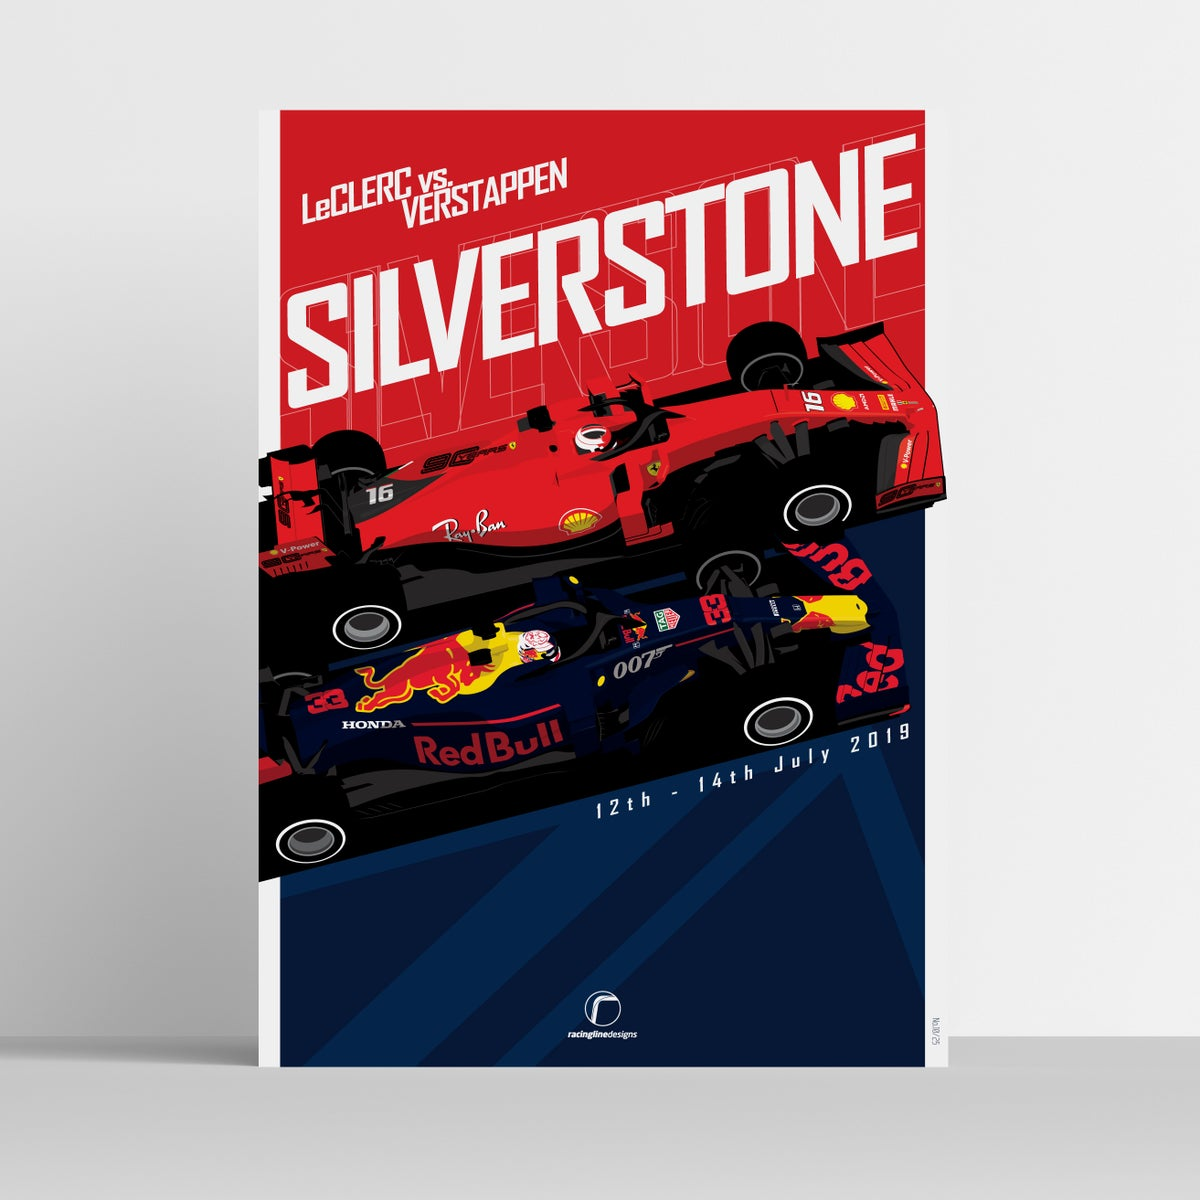 Image of LeClerc vs Verstappen | Limited Edition Race Posters